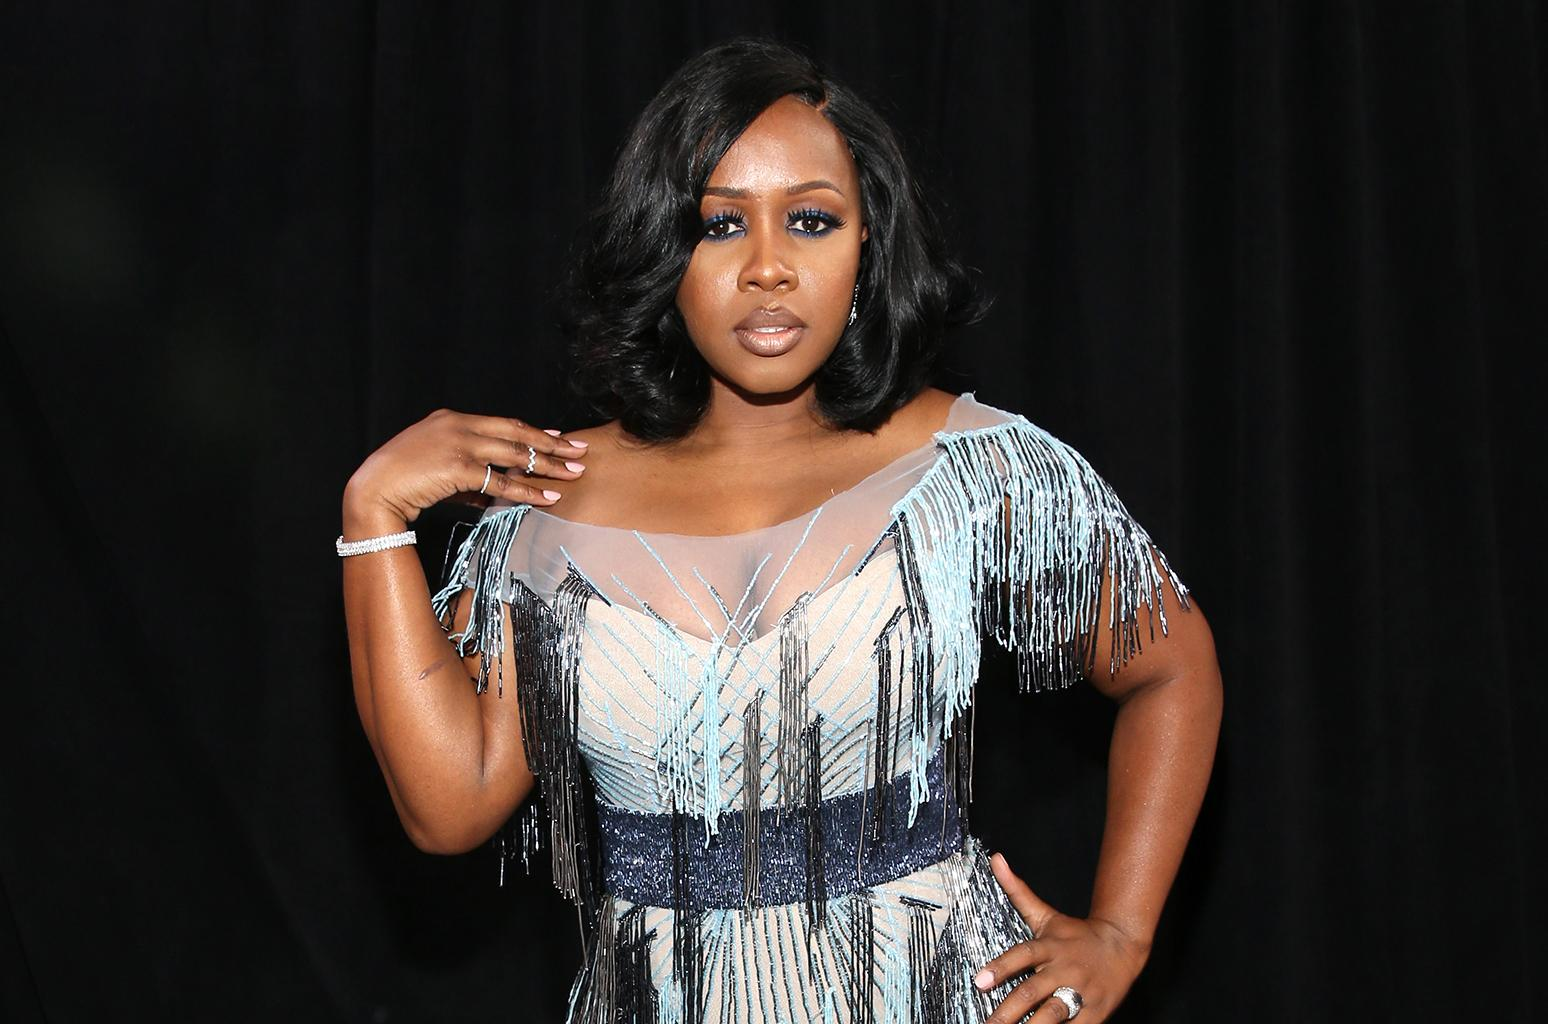 Remy Ma Shows Chris Brown Support After Releasing Controversial T-Shirt Calling Rape Accuser A Liar - 'I'll Wear It Every Week'